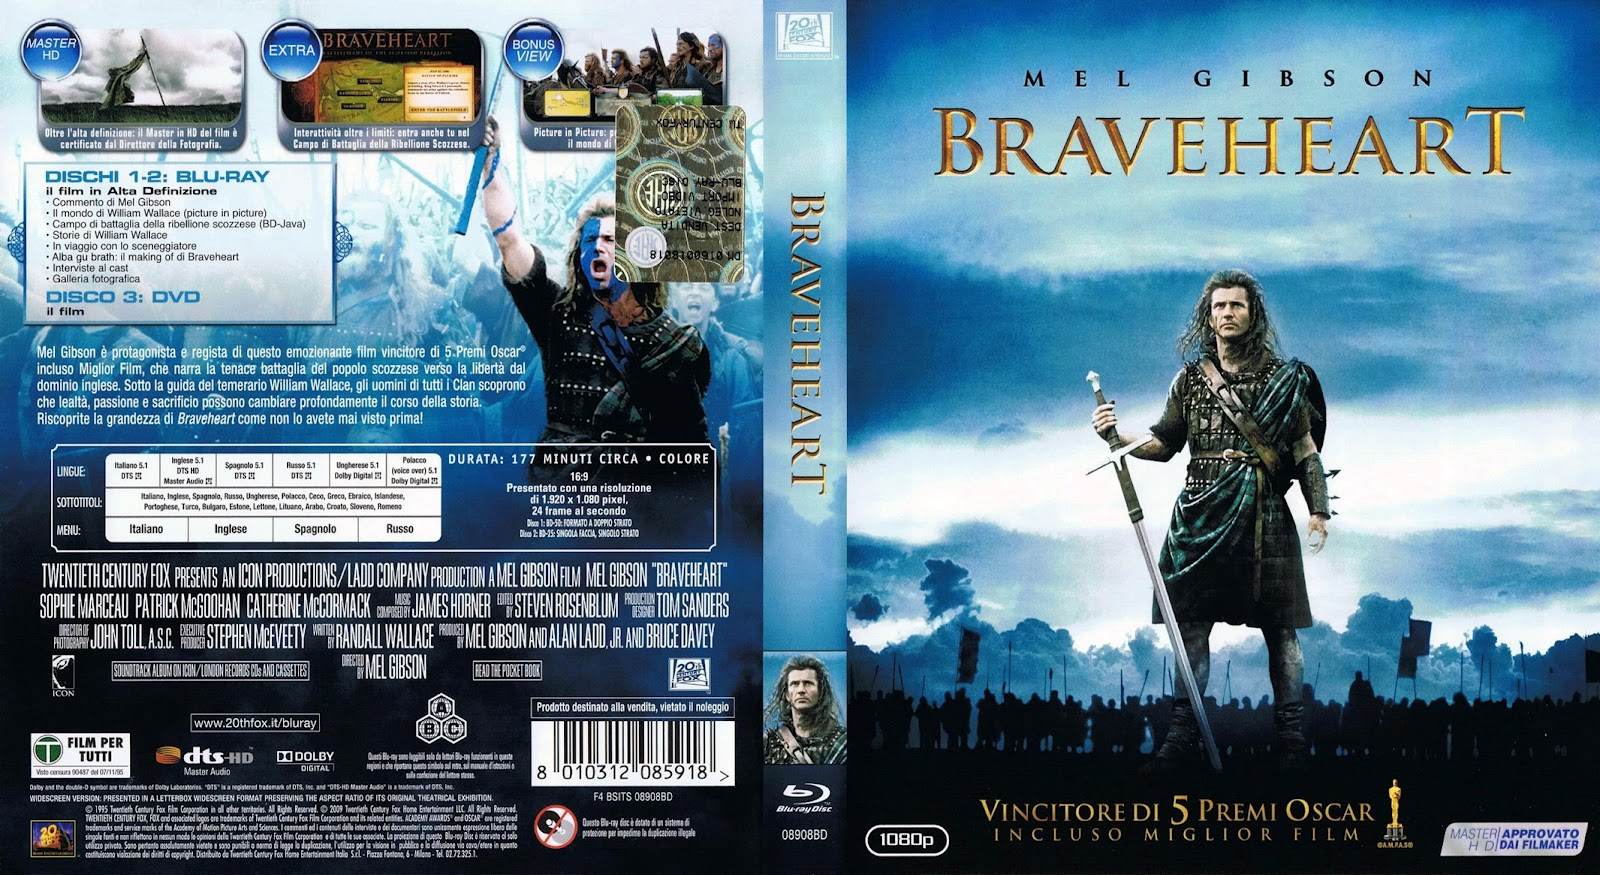 Braveheart Blu-ray Dvd Cover